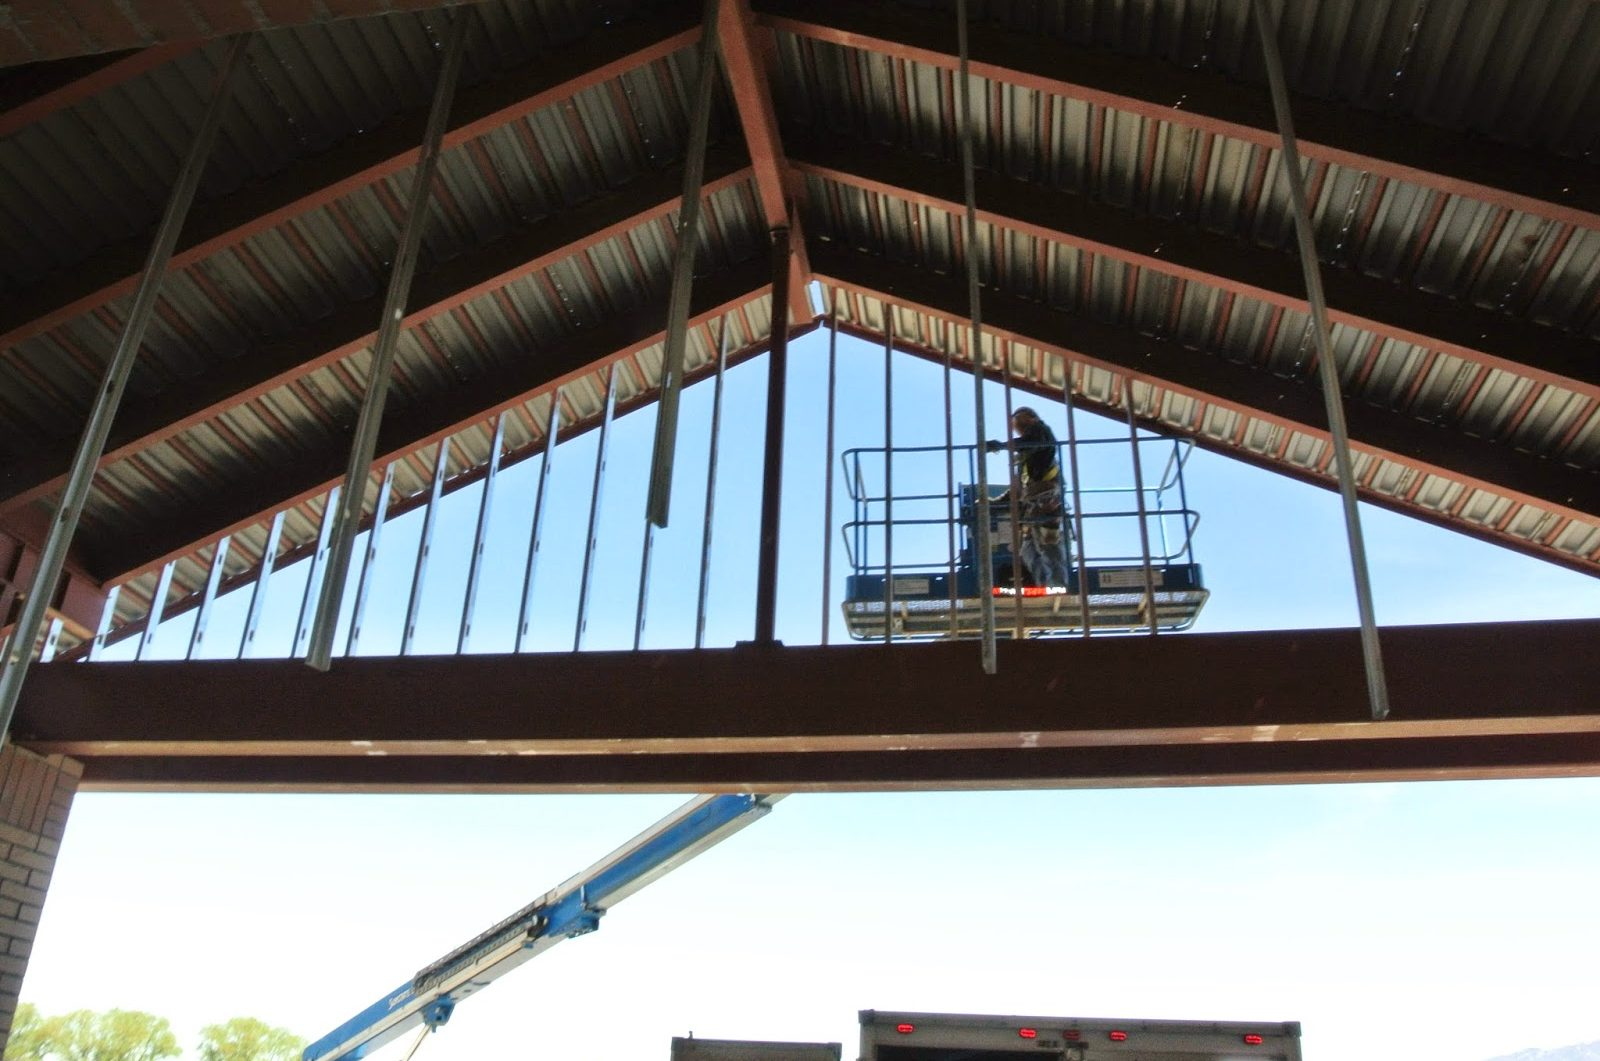 Light Weight GFRC Panels Need Much Simpler Construction Support